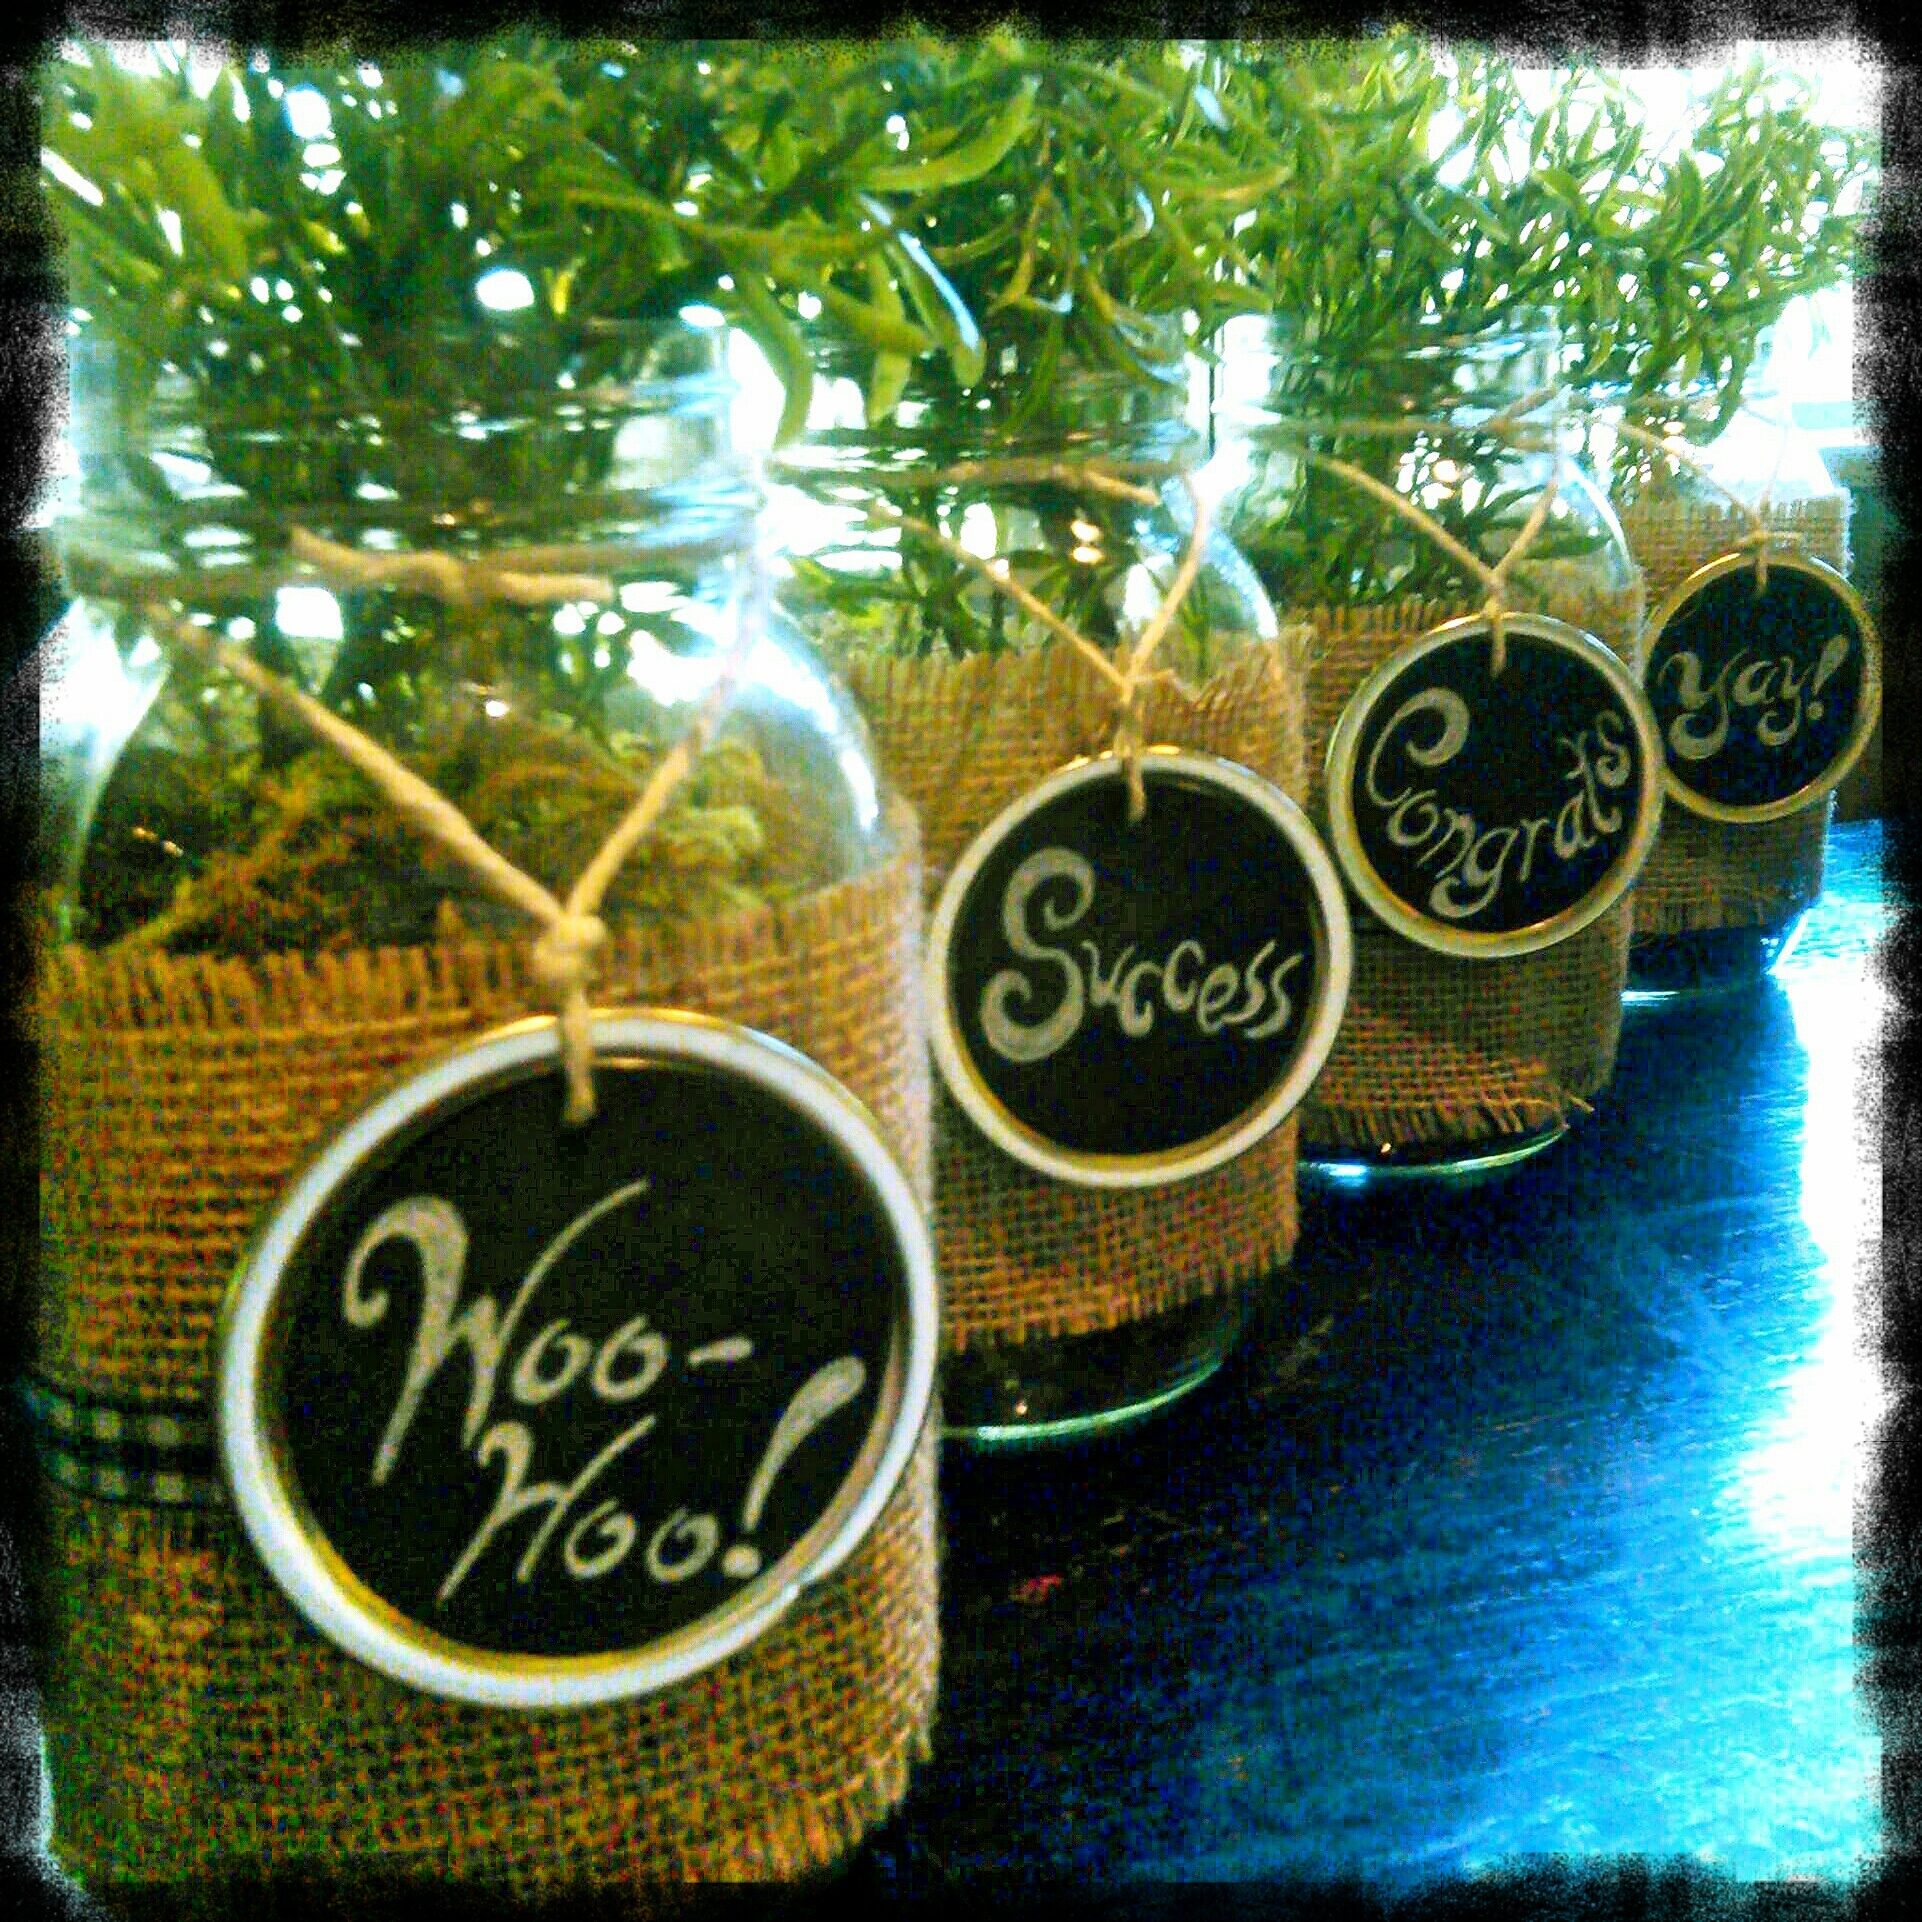 Mason Jar Table Top Decorations for a Graduation Party by Shalom Schultz Designs. Green herb plants in clear jars, wrapped in burlap and black & white ribbon and hung with chalkboard tags made from mason jar lids.  Hand drawn words of congratulations in chalk.